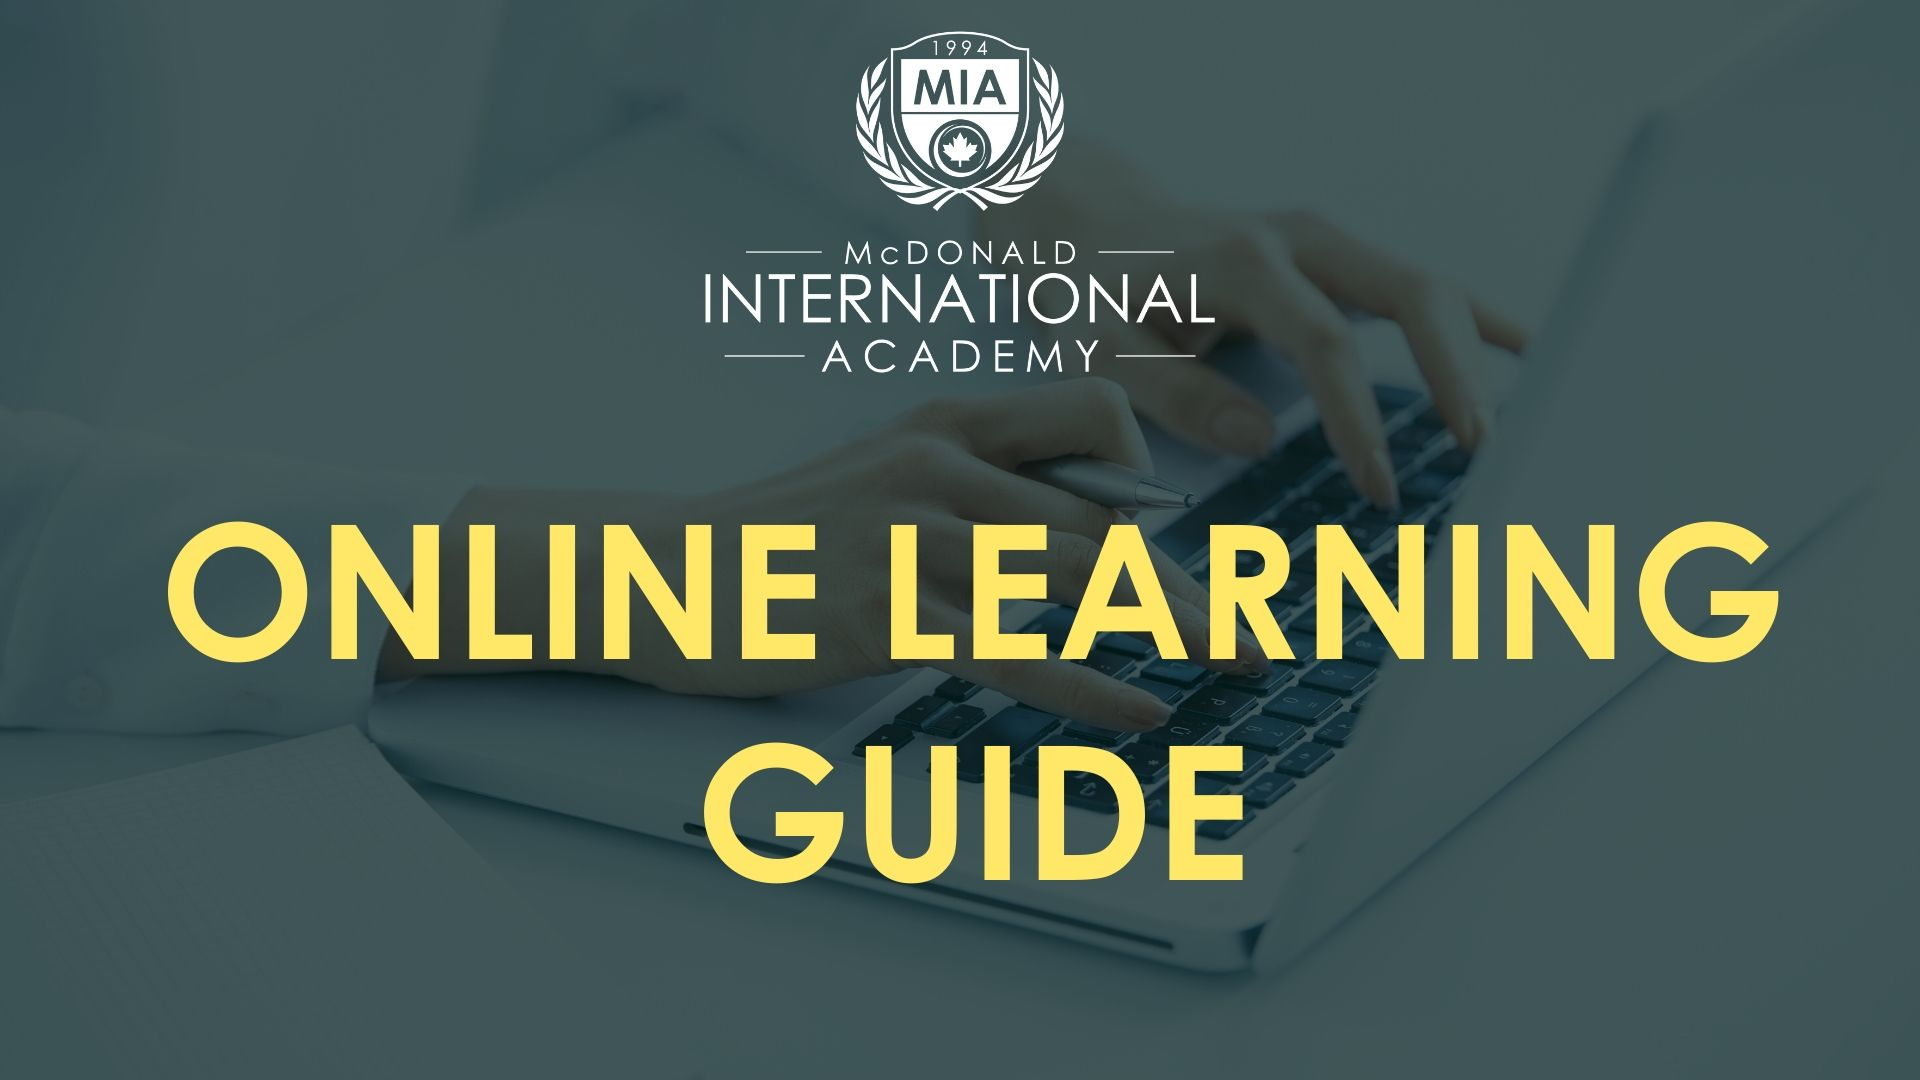 MIA ONLINE LEARNING GUIDE